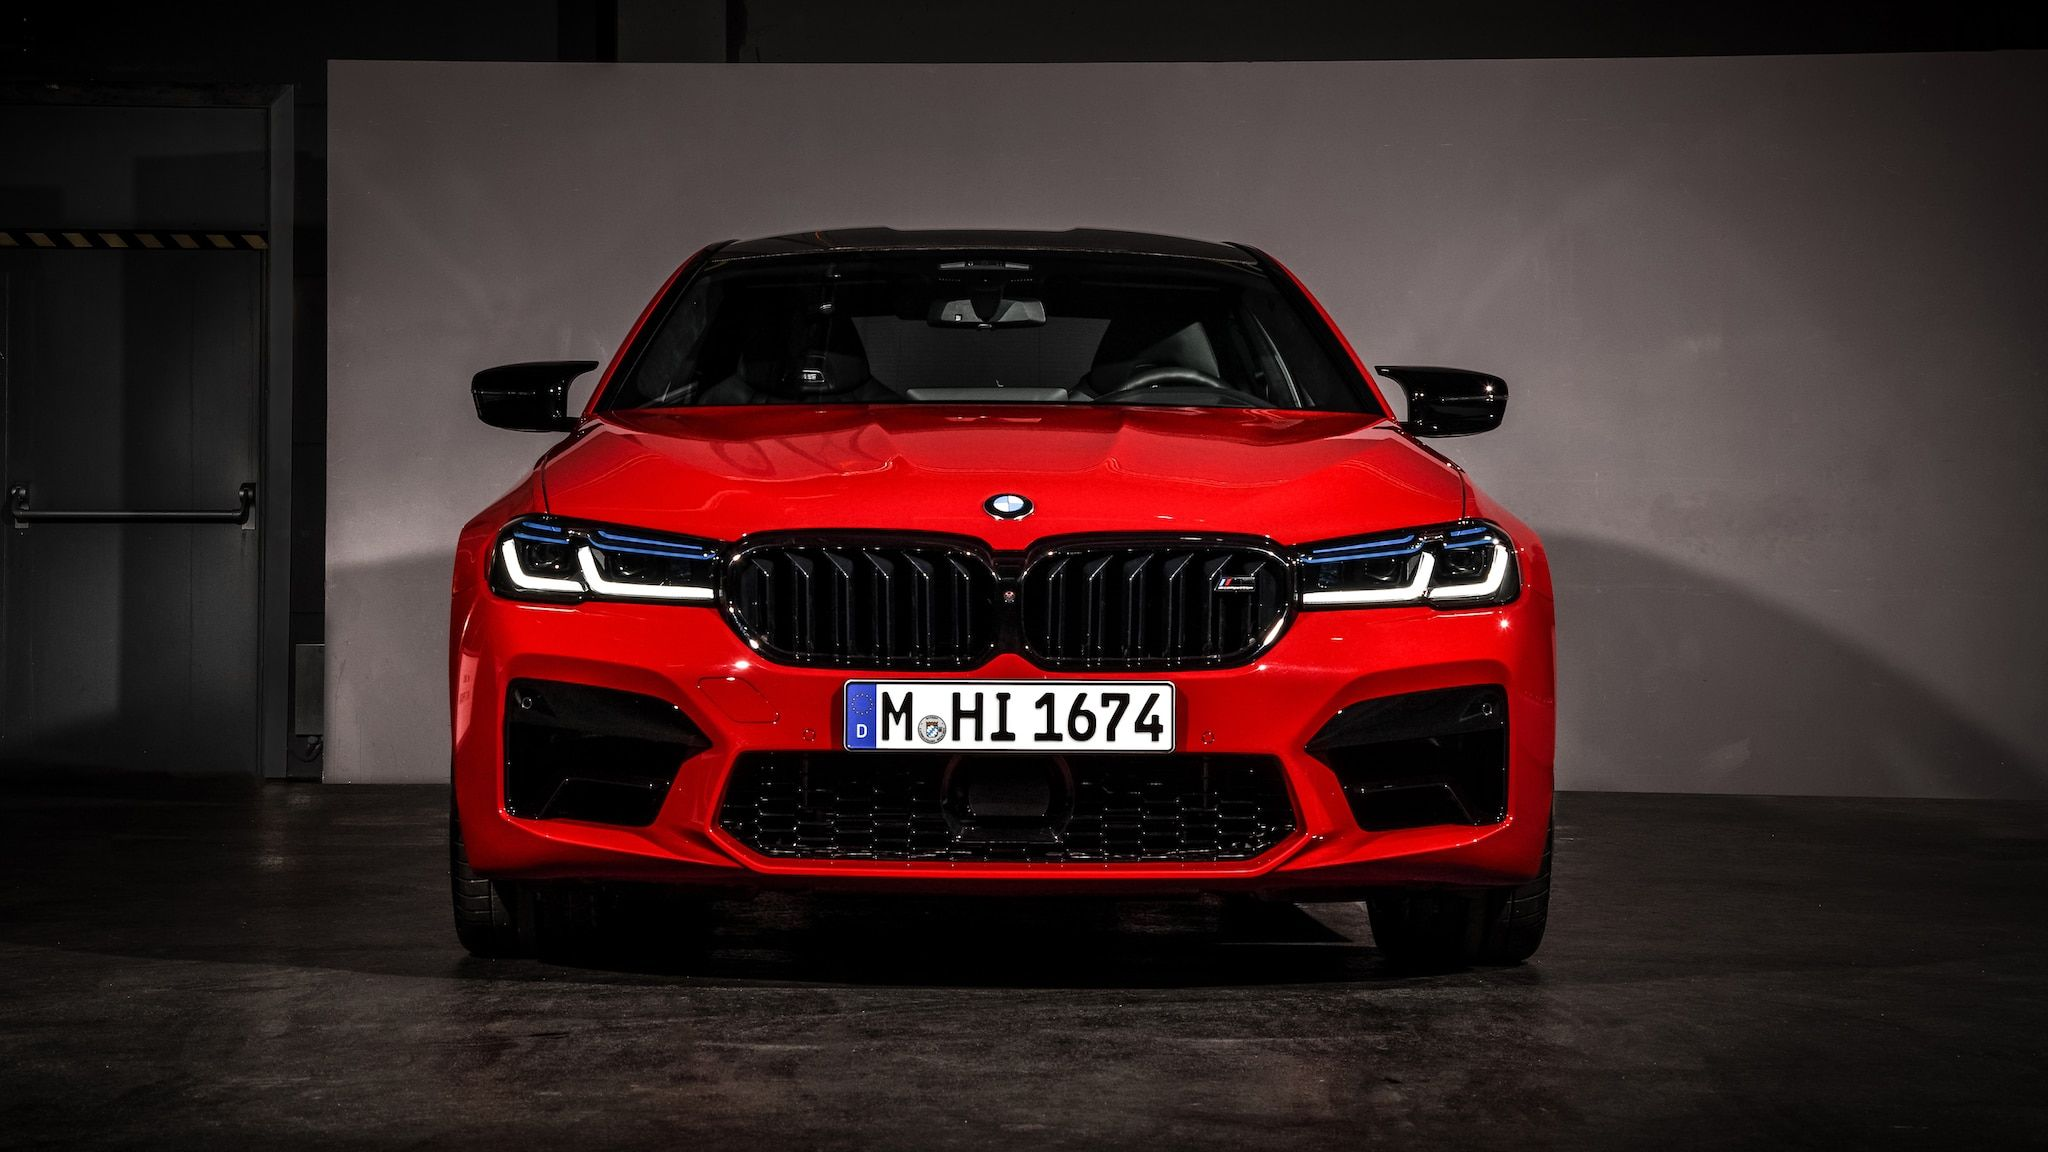 2021 Bmw M5 First Look The Big Beast Is Back And Breathes Better Bmw Bmw M5 Bmw I8